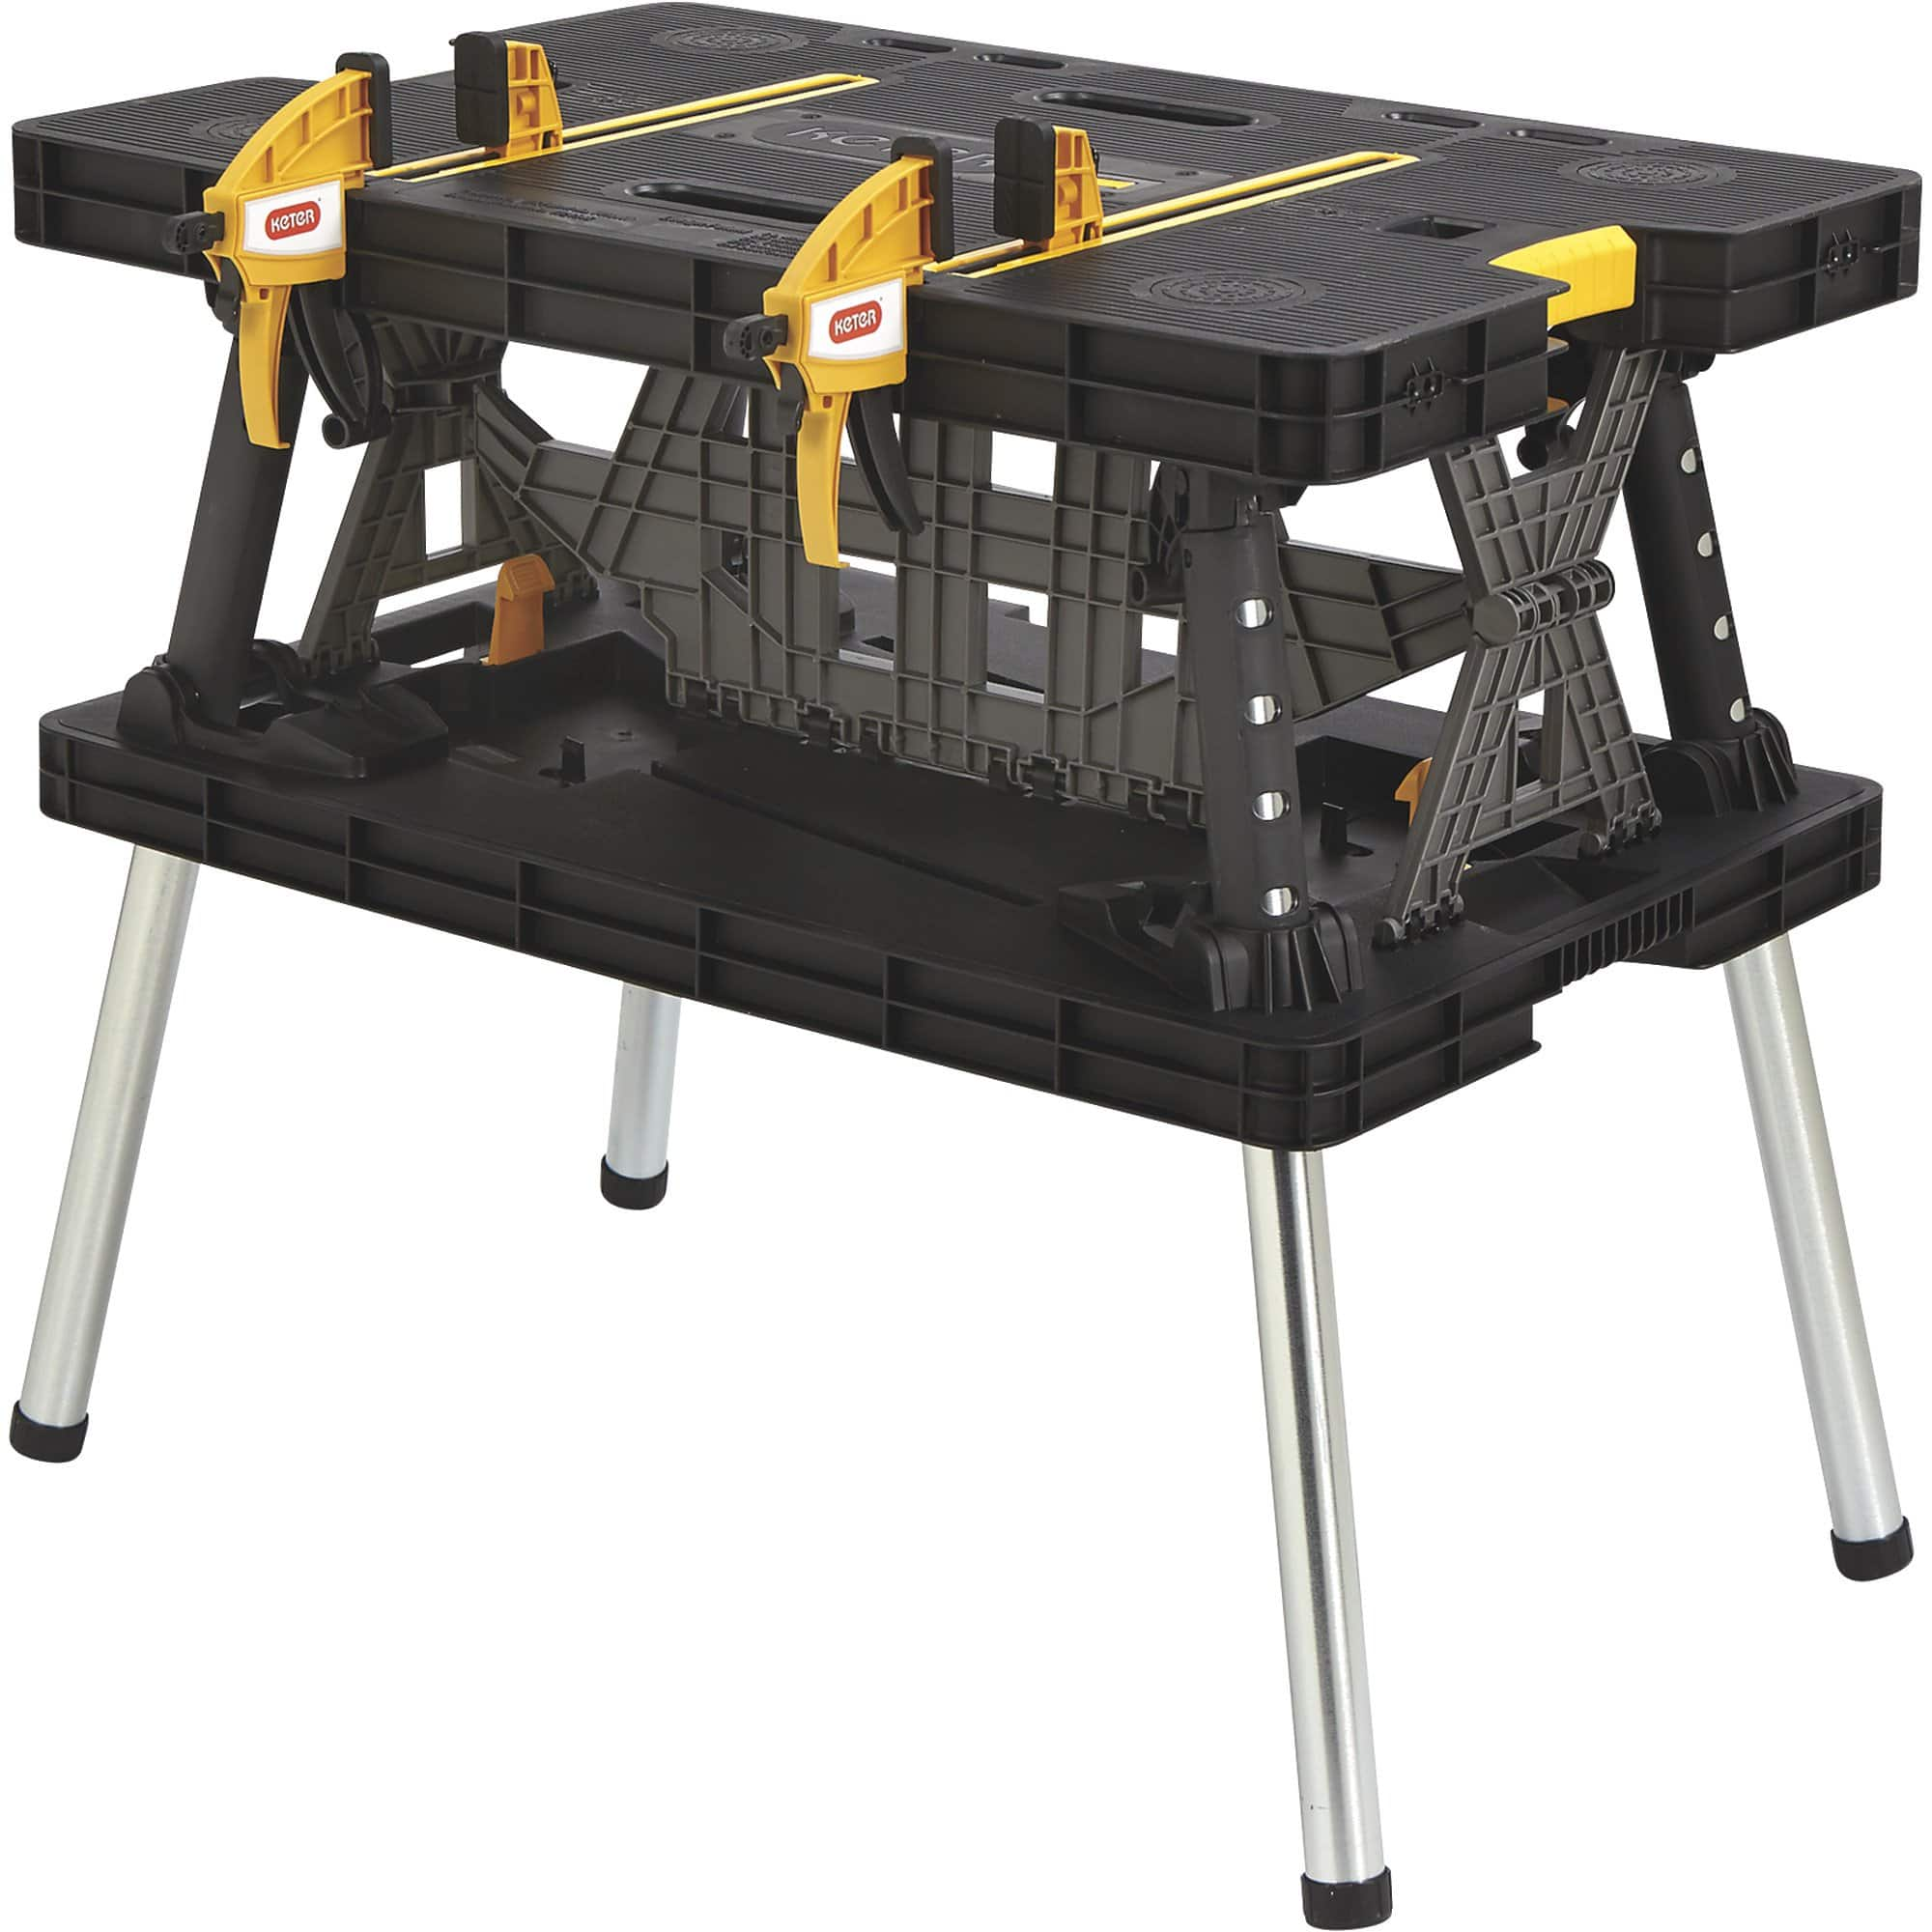 Costco Folding Table In Store.Keter Folding Work Table At Costco 50 In Store Only